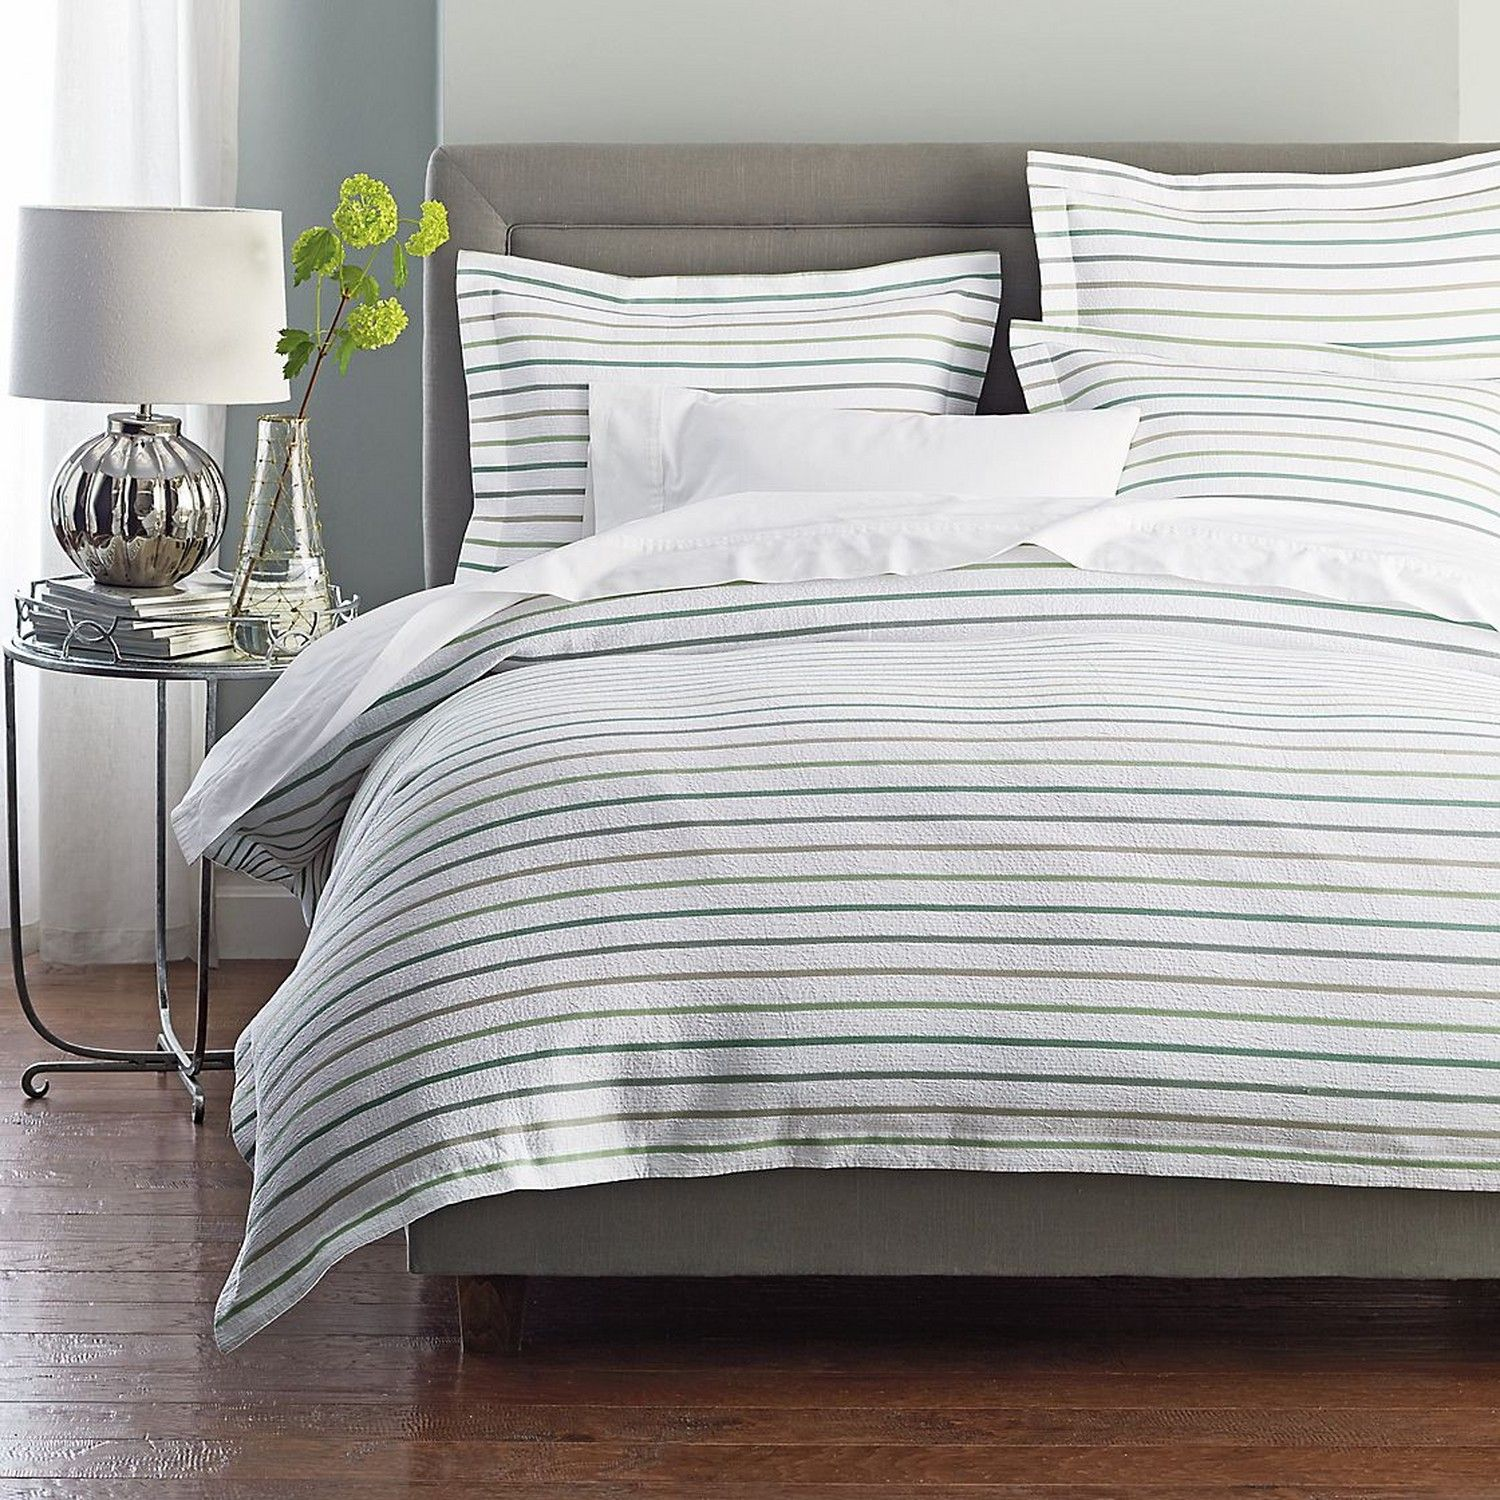 Company Store striped duvet Guest room bed, Home decor